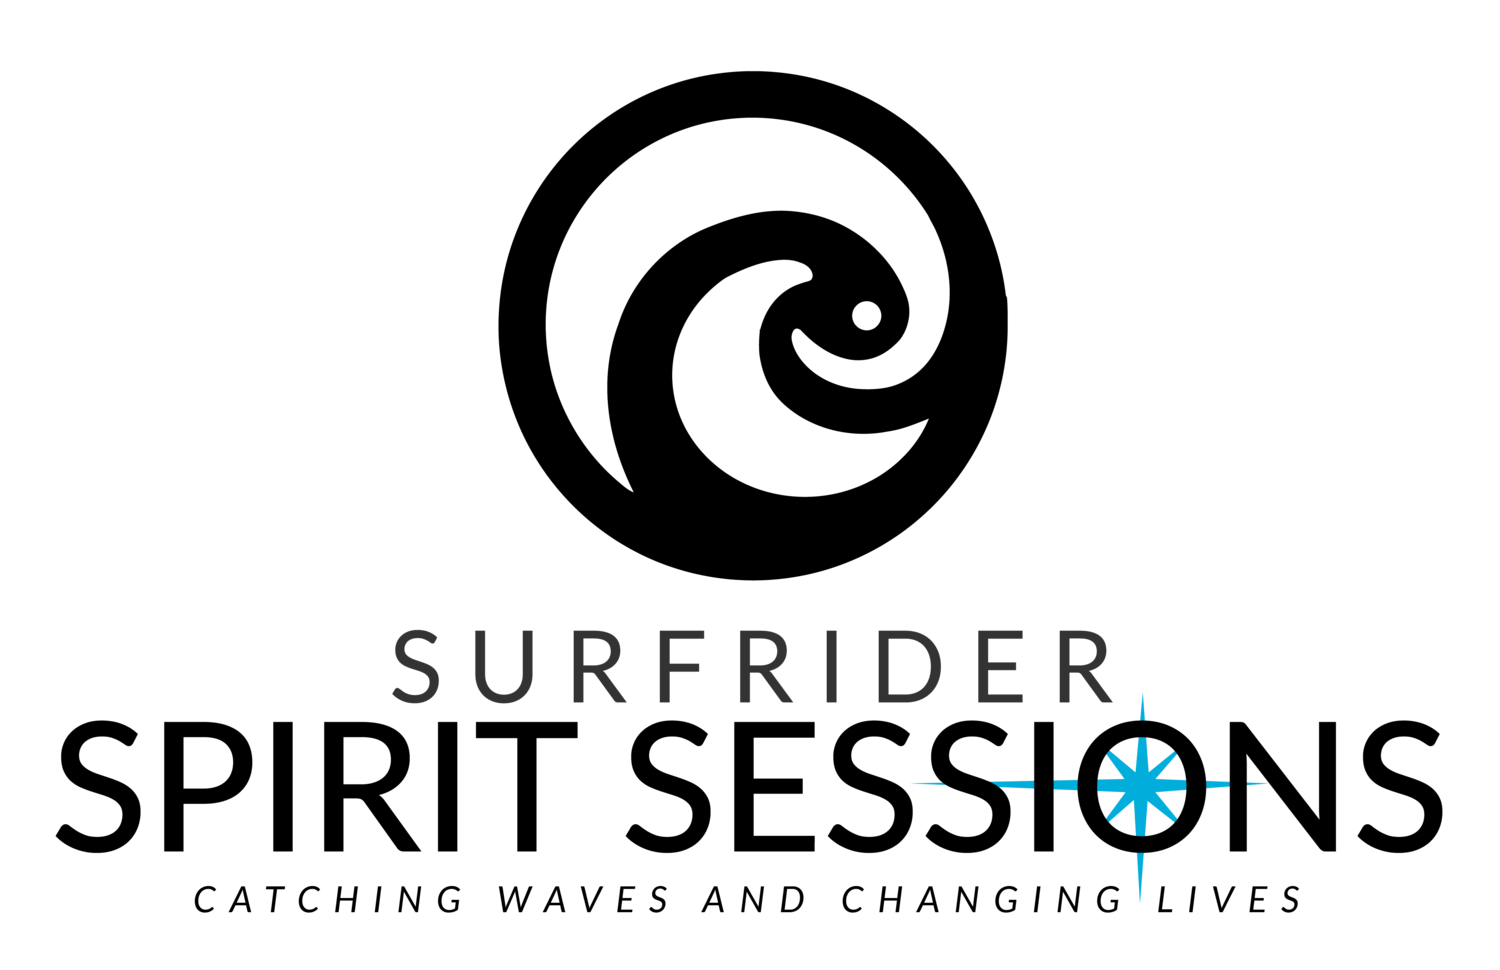 SURFRIDER SPIRIT SESSIONS